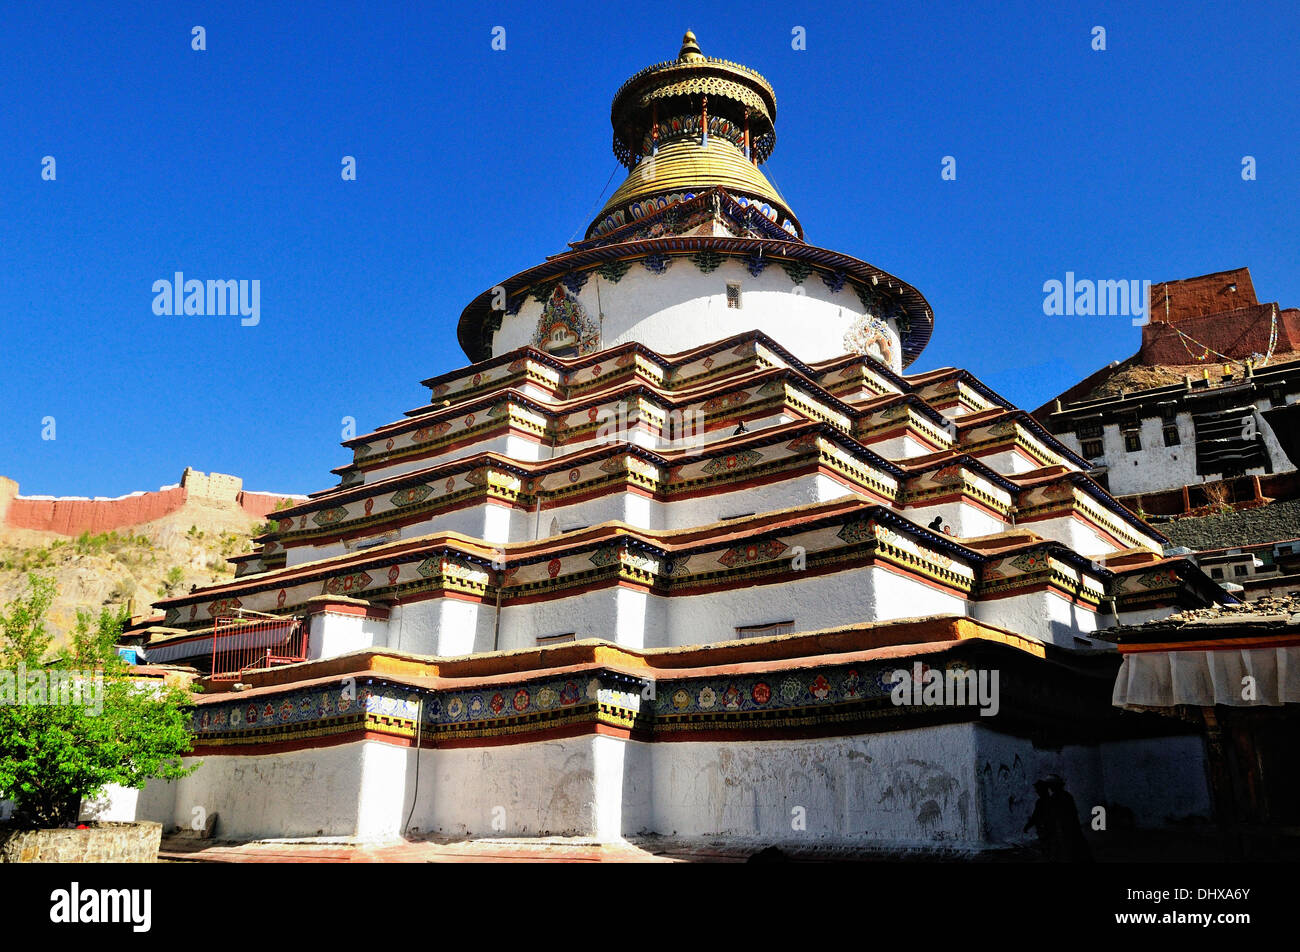 Tsuklahang Temple Gyantse Tibet China - Stock Image